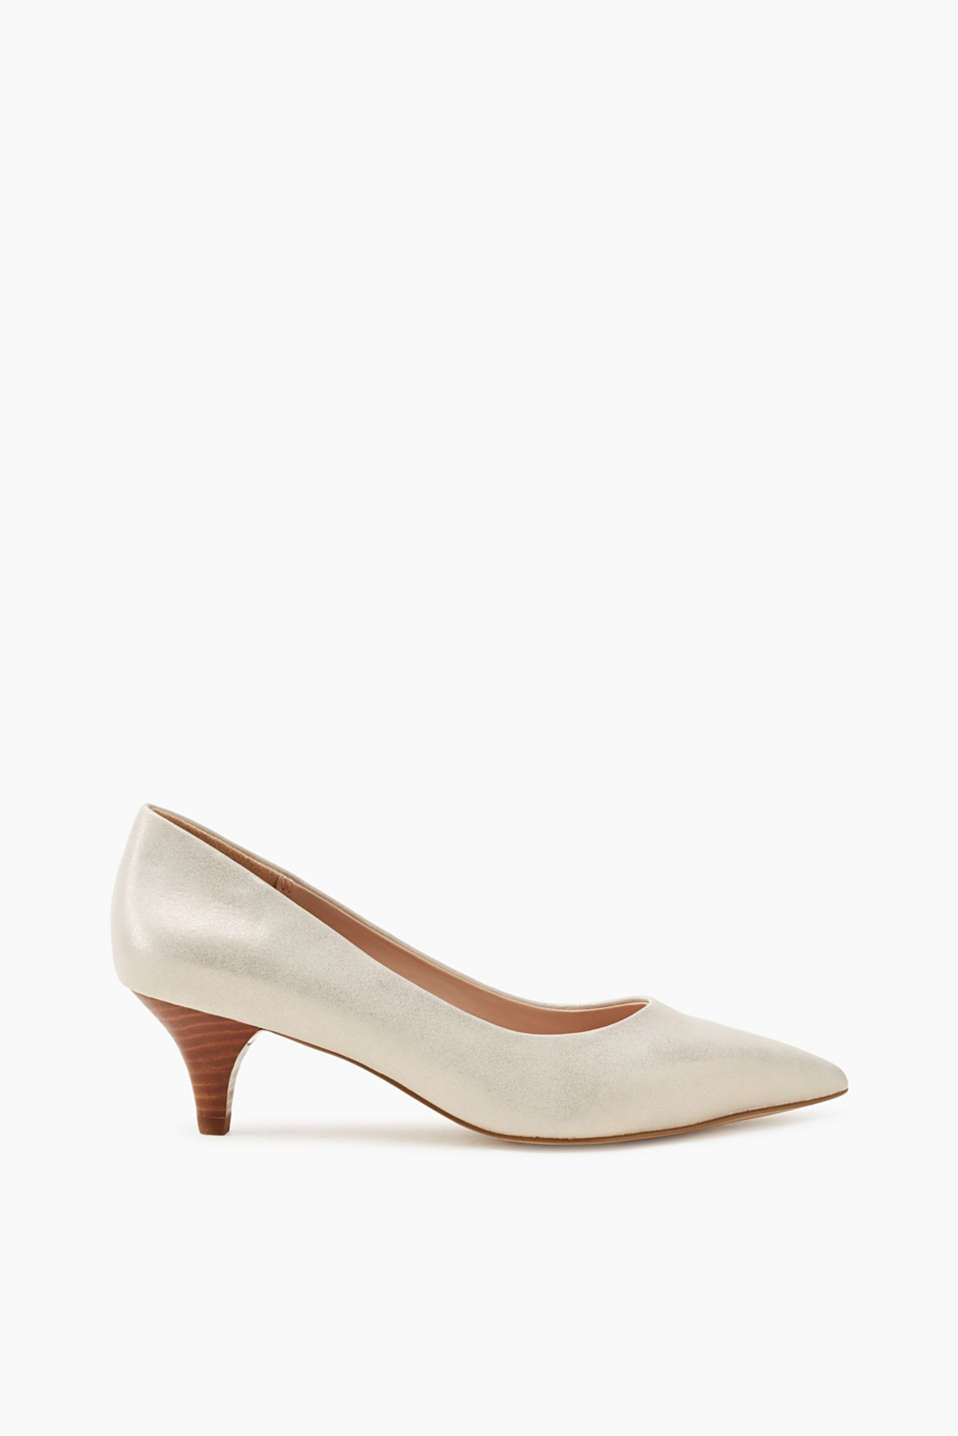 Esprit - Shimmering court shoes with a kitten heel